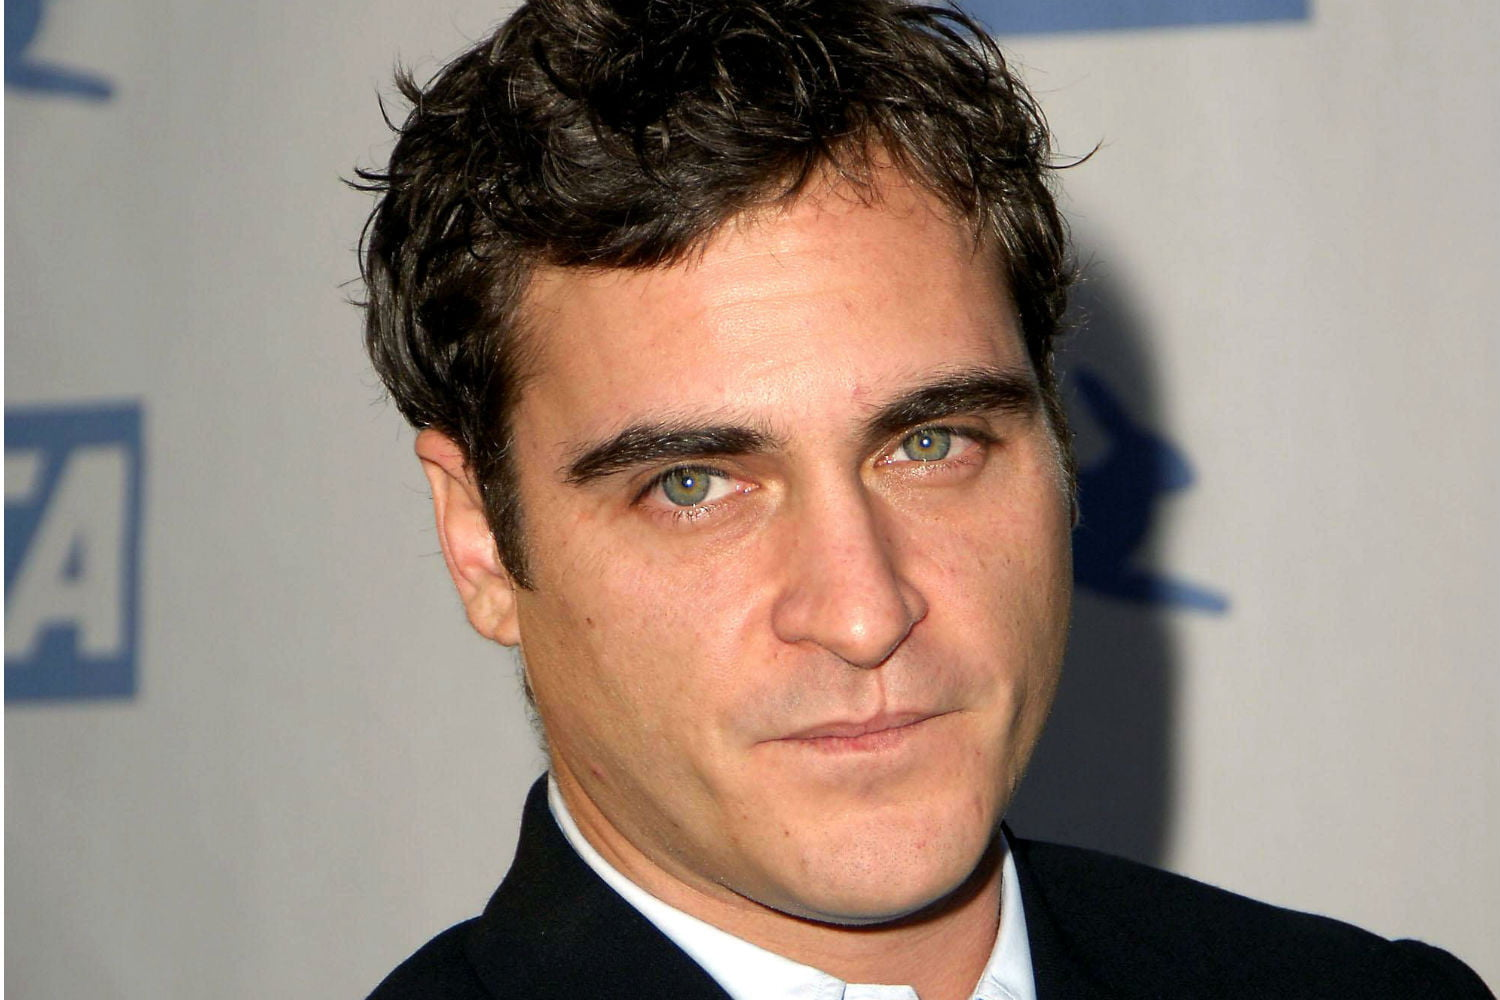 The Joker Movie Starring Joaquin Phoenix: Everything We Know